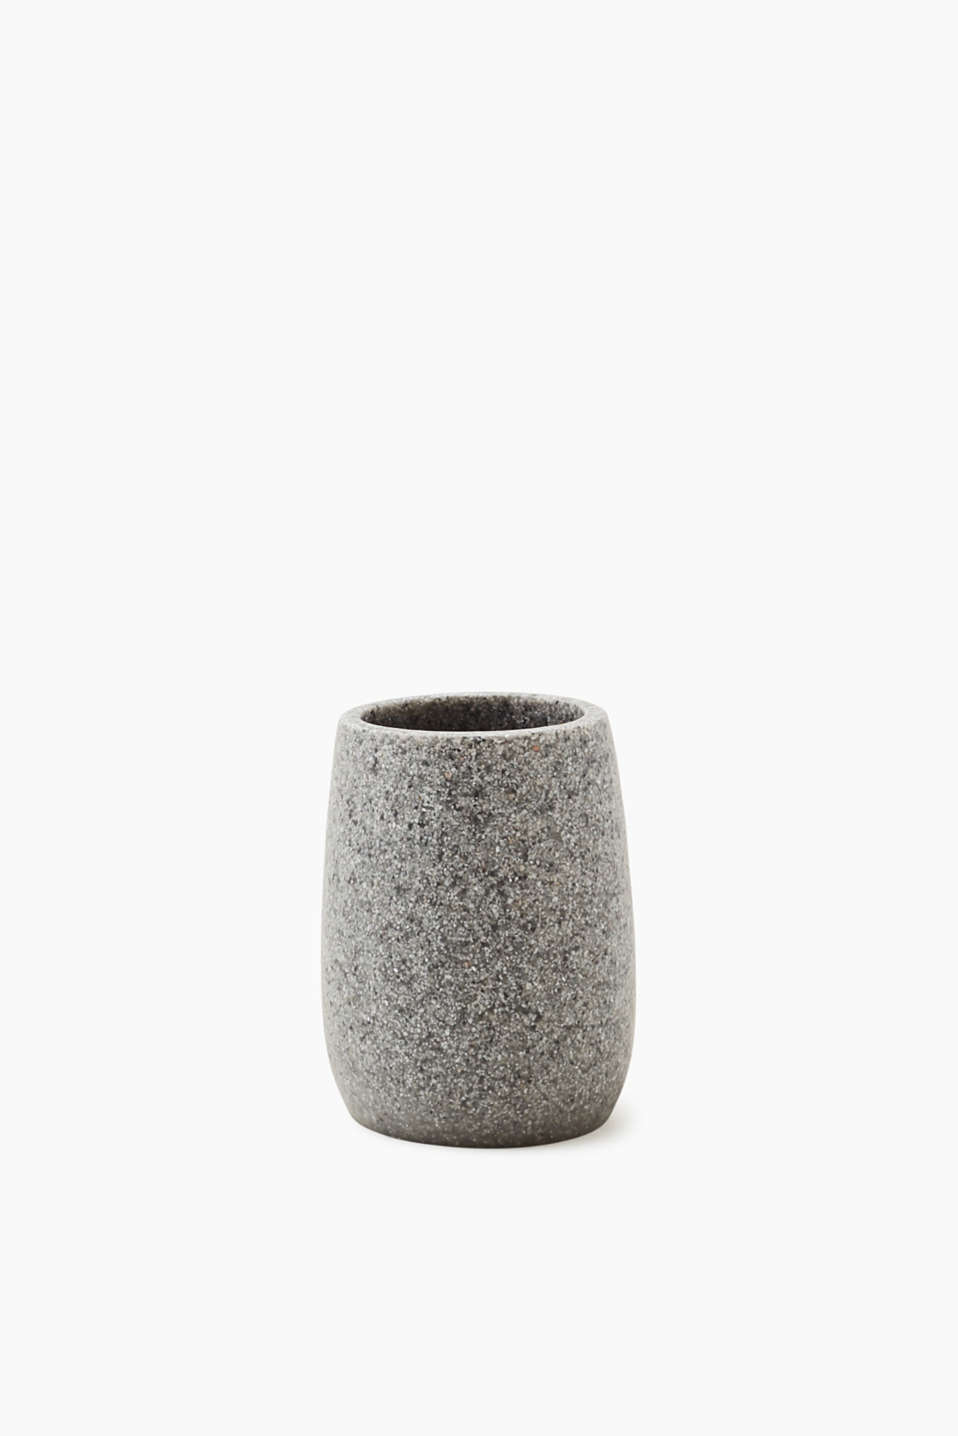 Esprit - Simple toothbrush tumbler, ceramic look